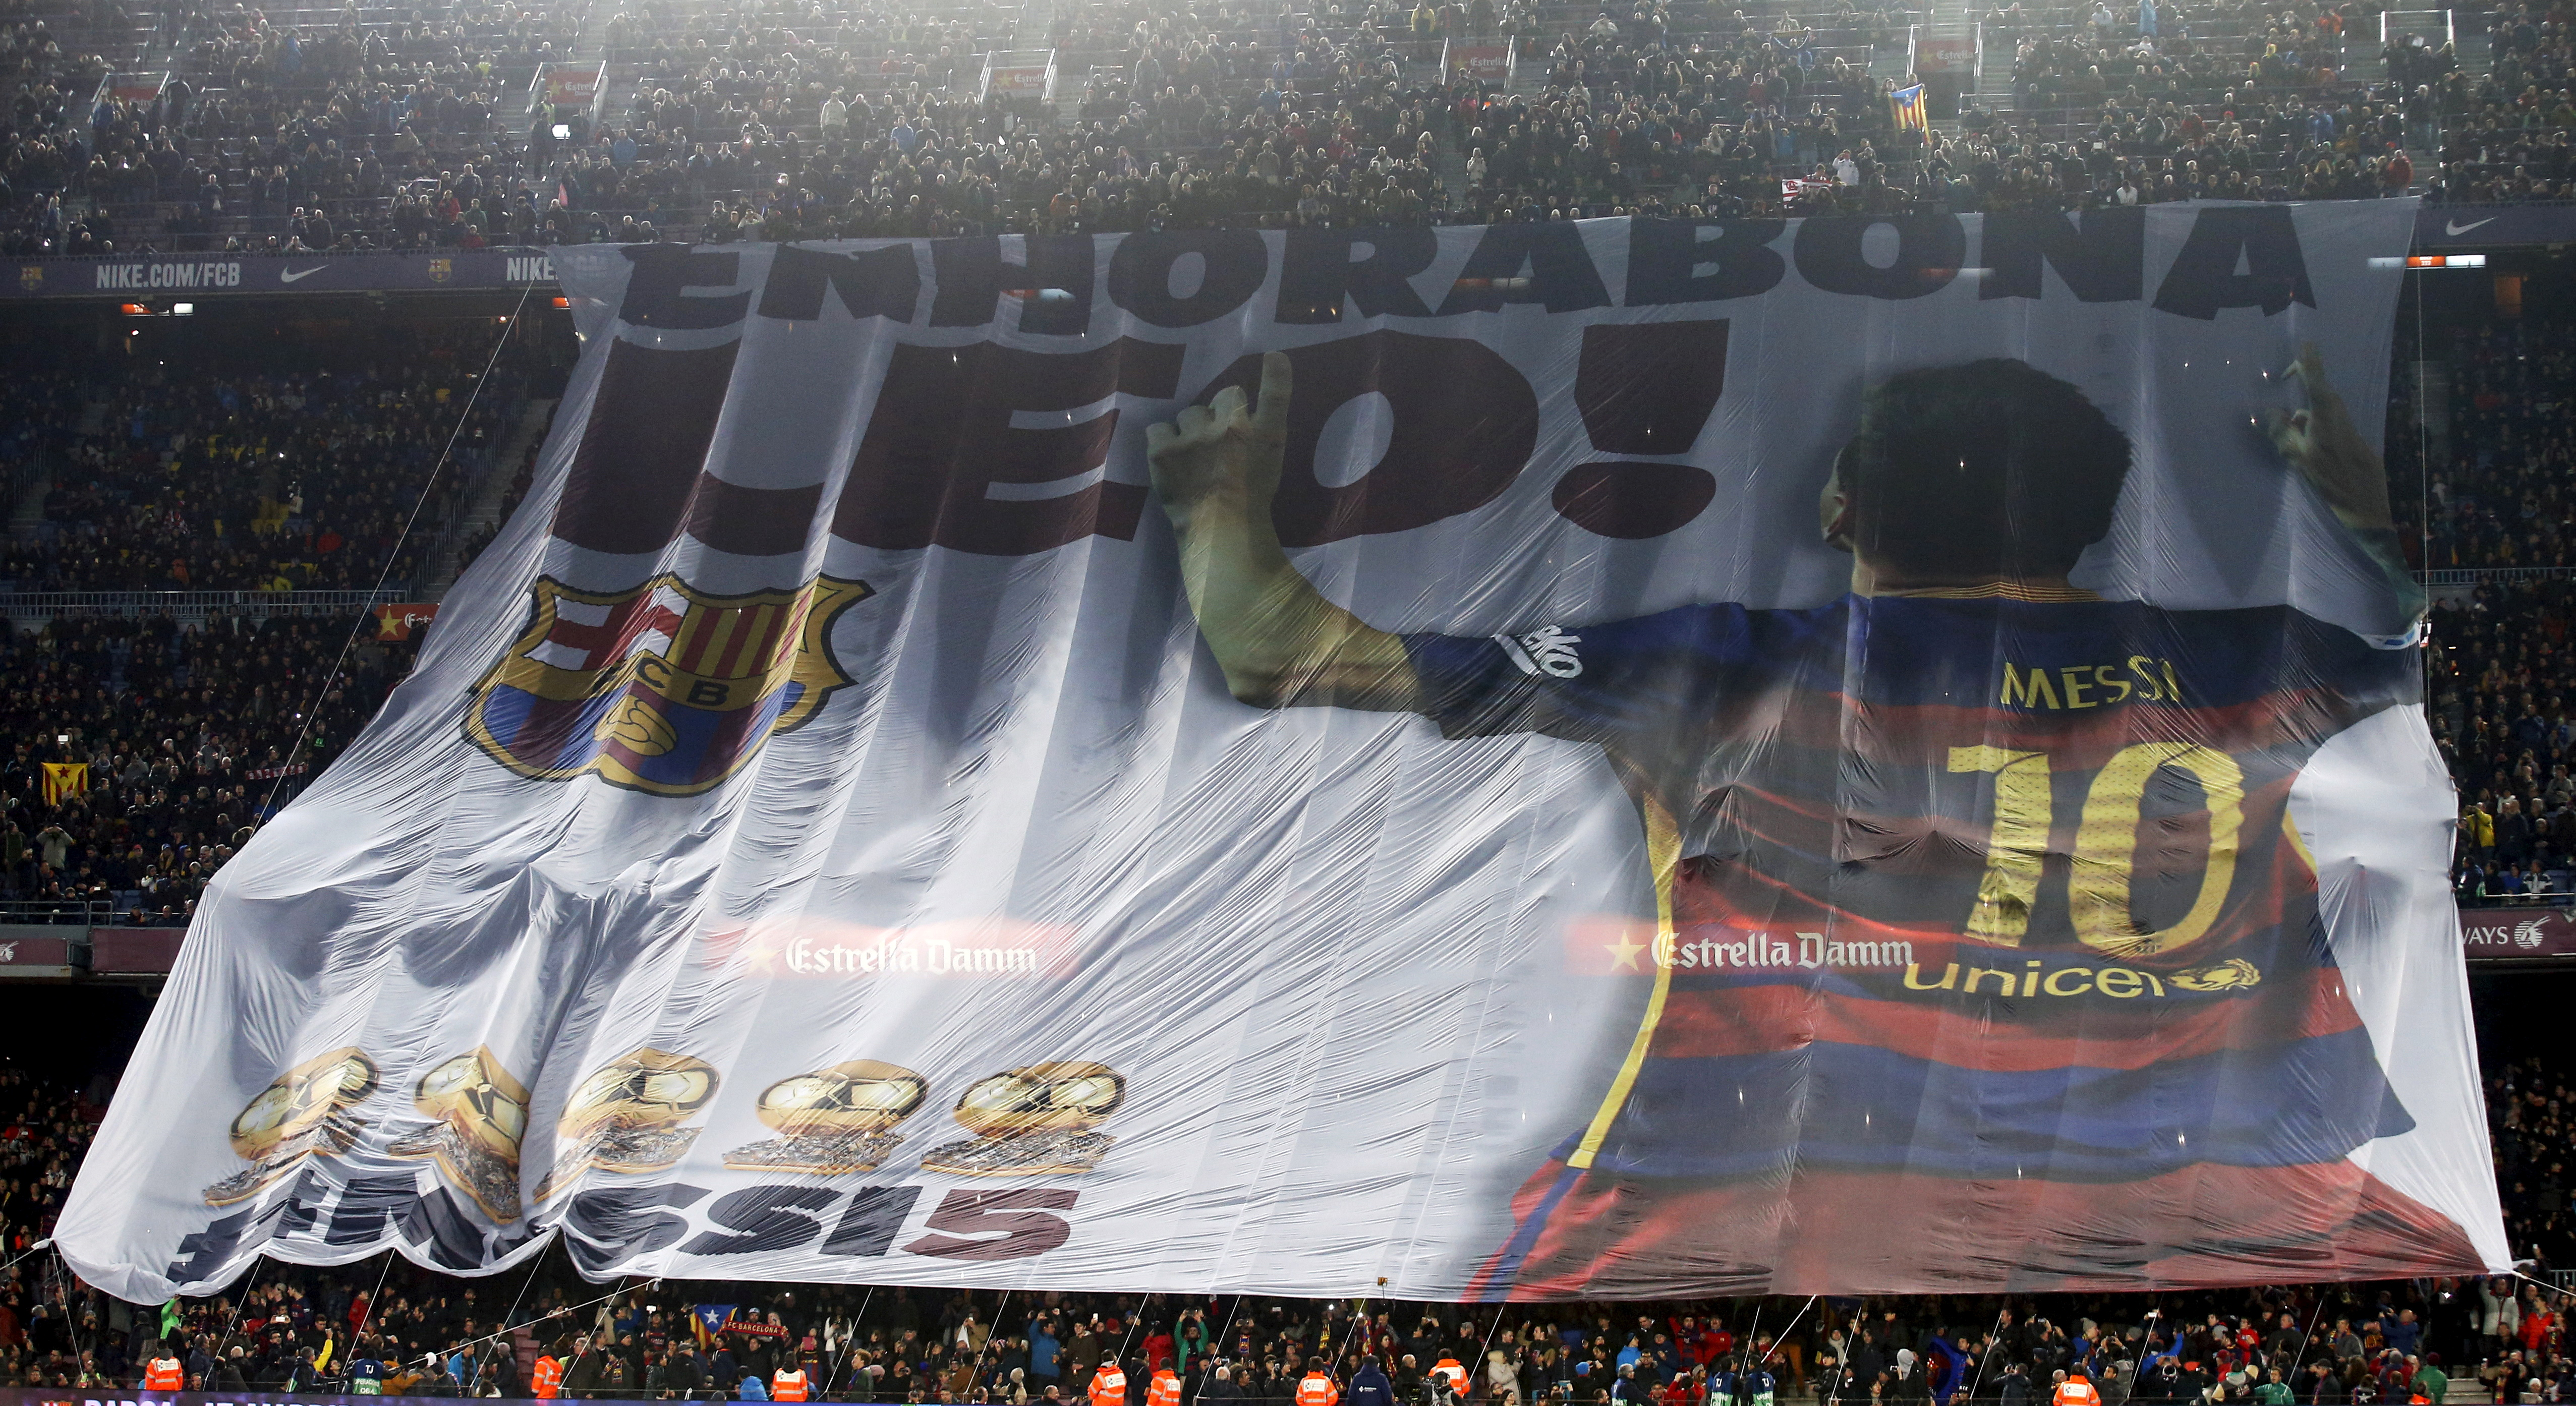 Football Soccer - FC Barcelona v Athletic Bilbao - Spanish Liga - Camp Nou stadium, Barcelona - January 17, 2016 Barcelona's supporters show a giant banner to congratulate Lionel Messi's FIFA Ballon d'Or 2015 trophy before their Spanish League soccer match against Athletic Bilbao. The banner reads